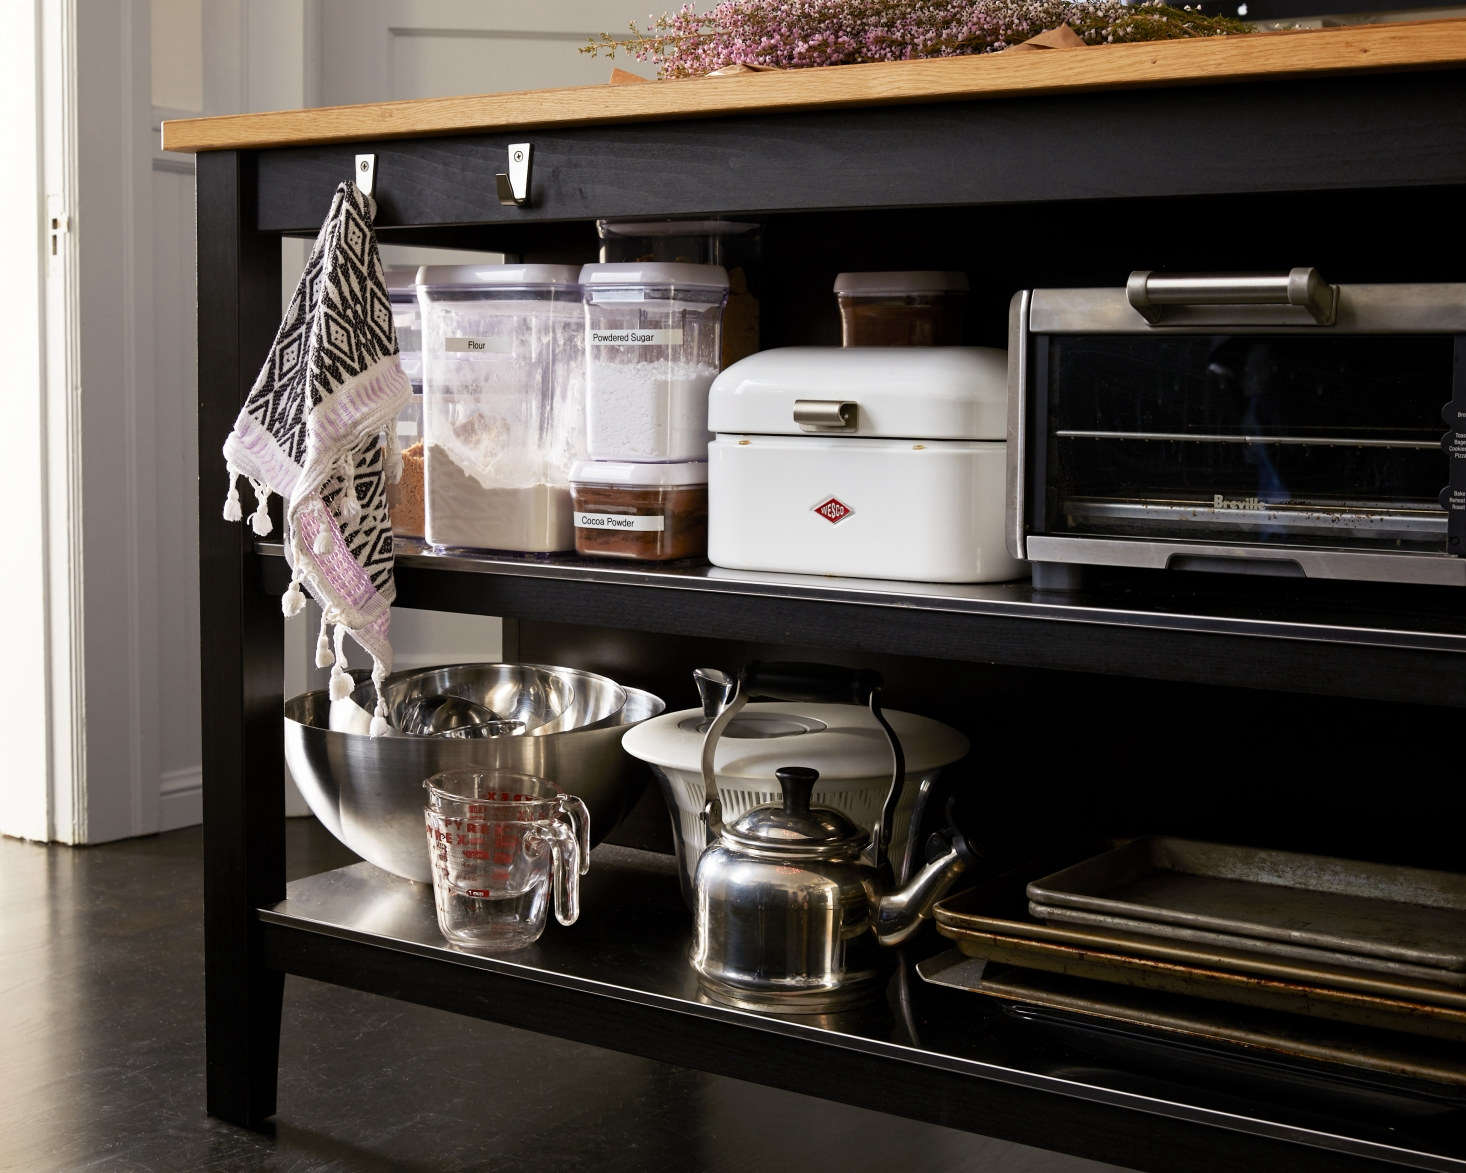 On the side of the Ikea Stenstorp Kitchen Island facing the sink, Amy stores her culinary essentials out of sight, including tea kettle, labeled baking essentials, and stacks of jelly roll pans. &#8